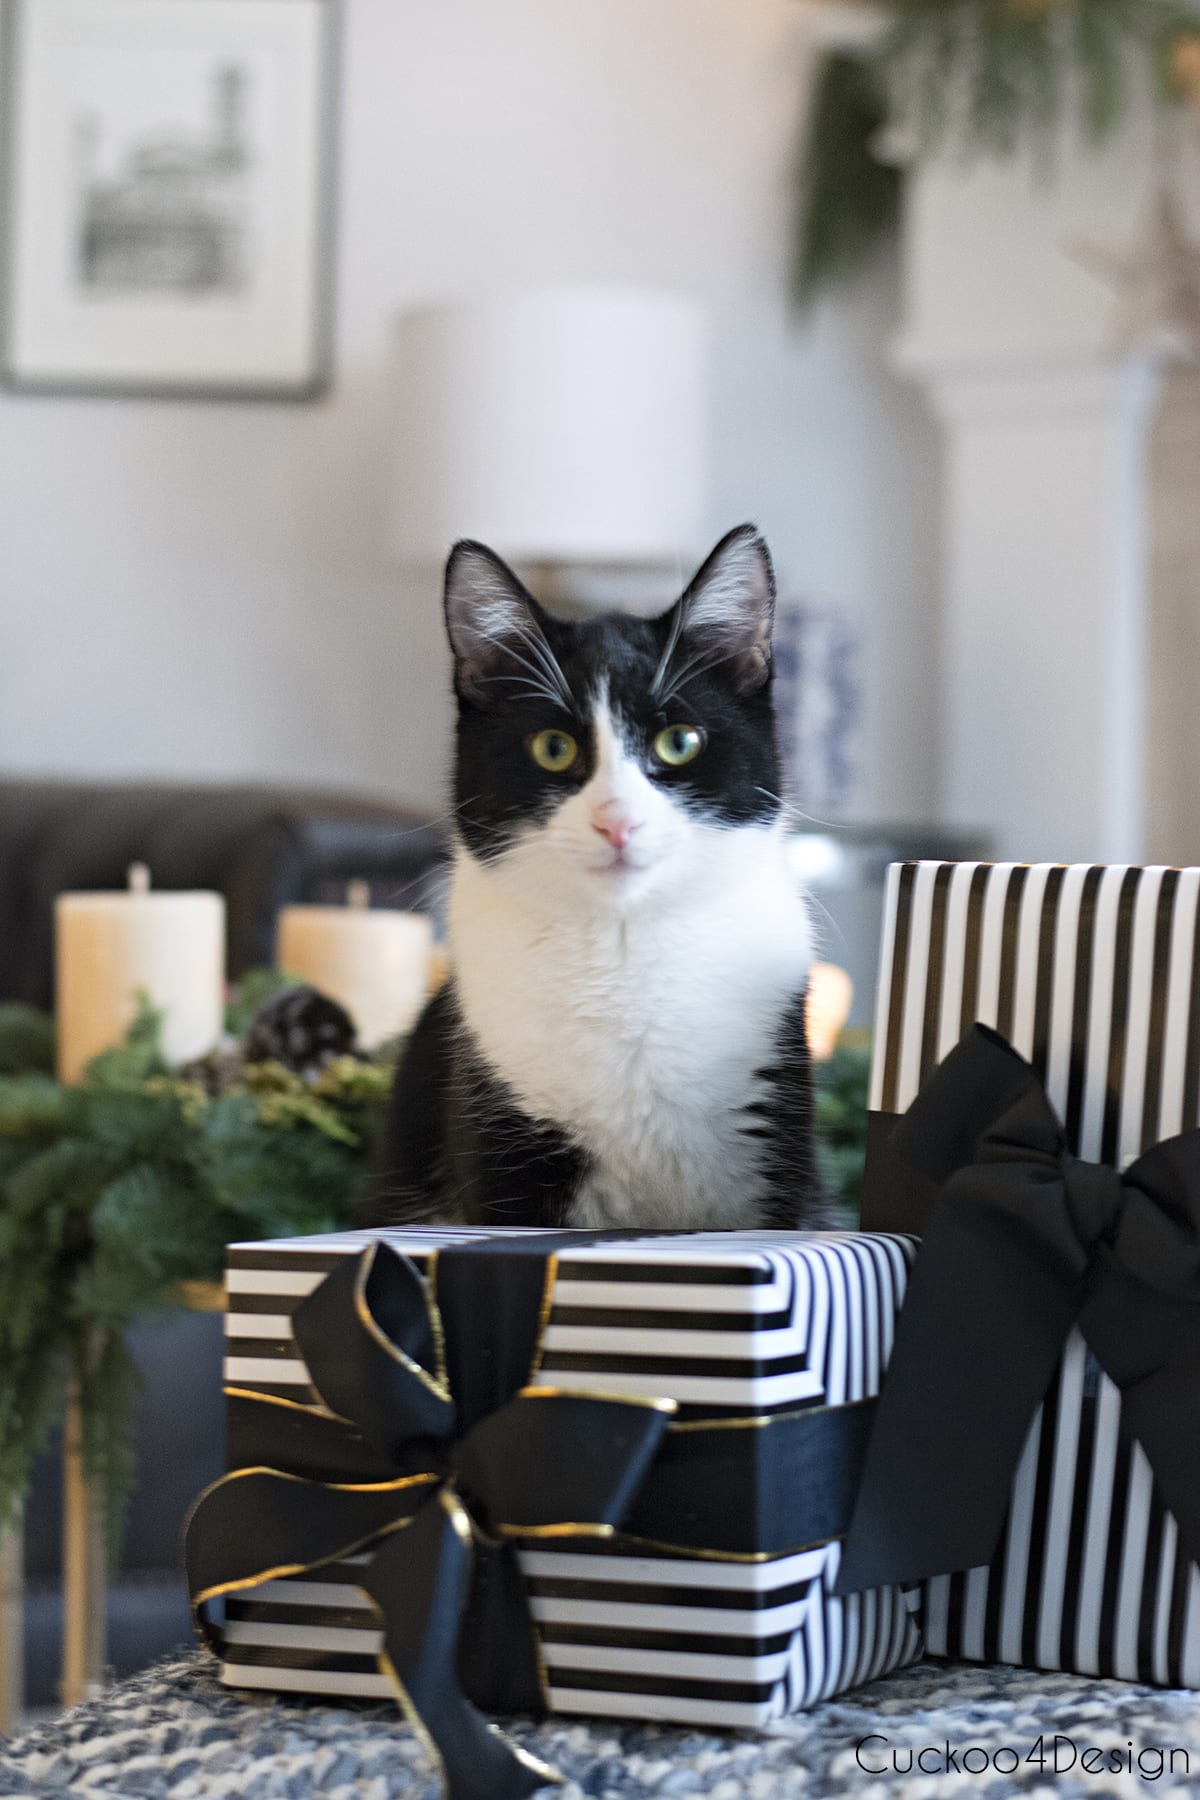 our tuxedo kitty posing with presents